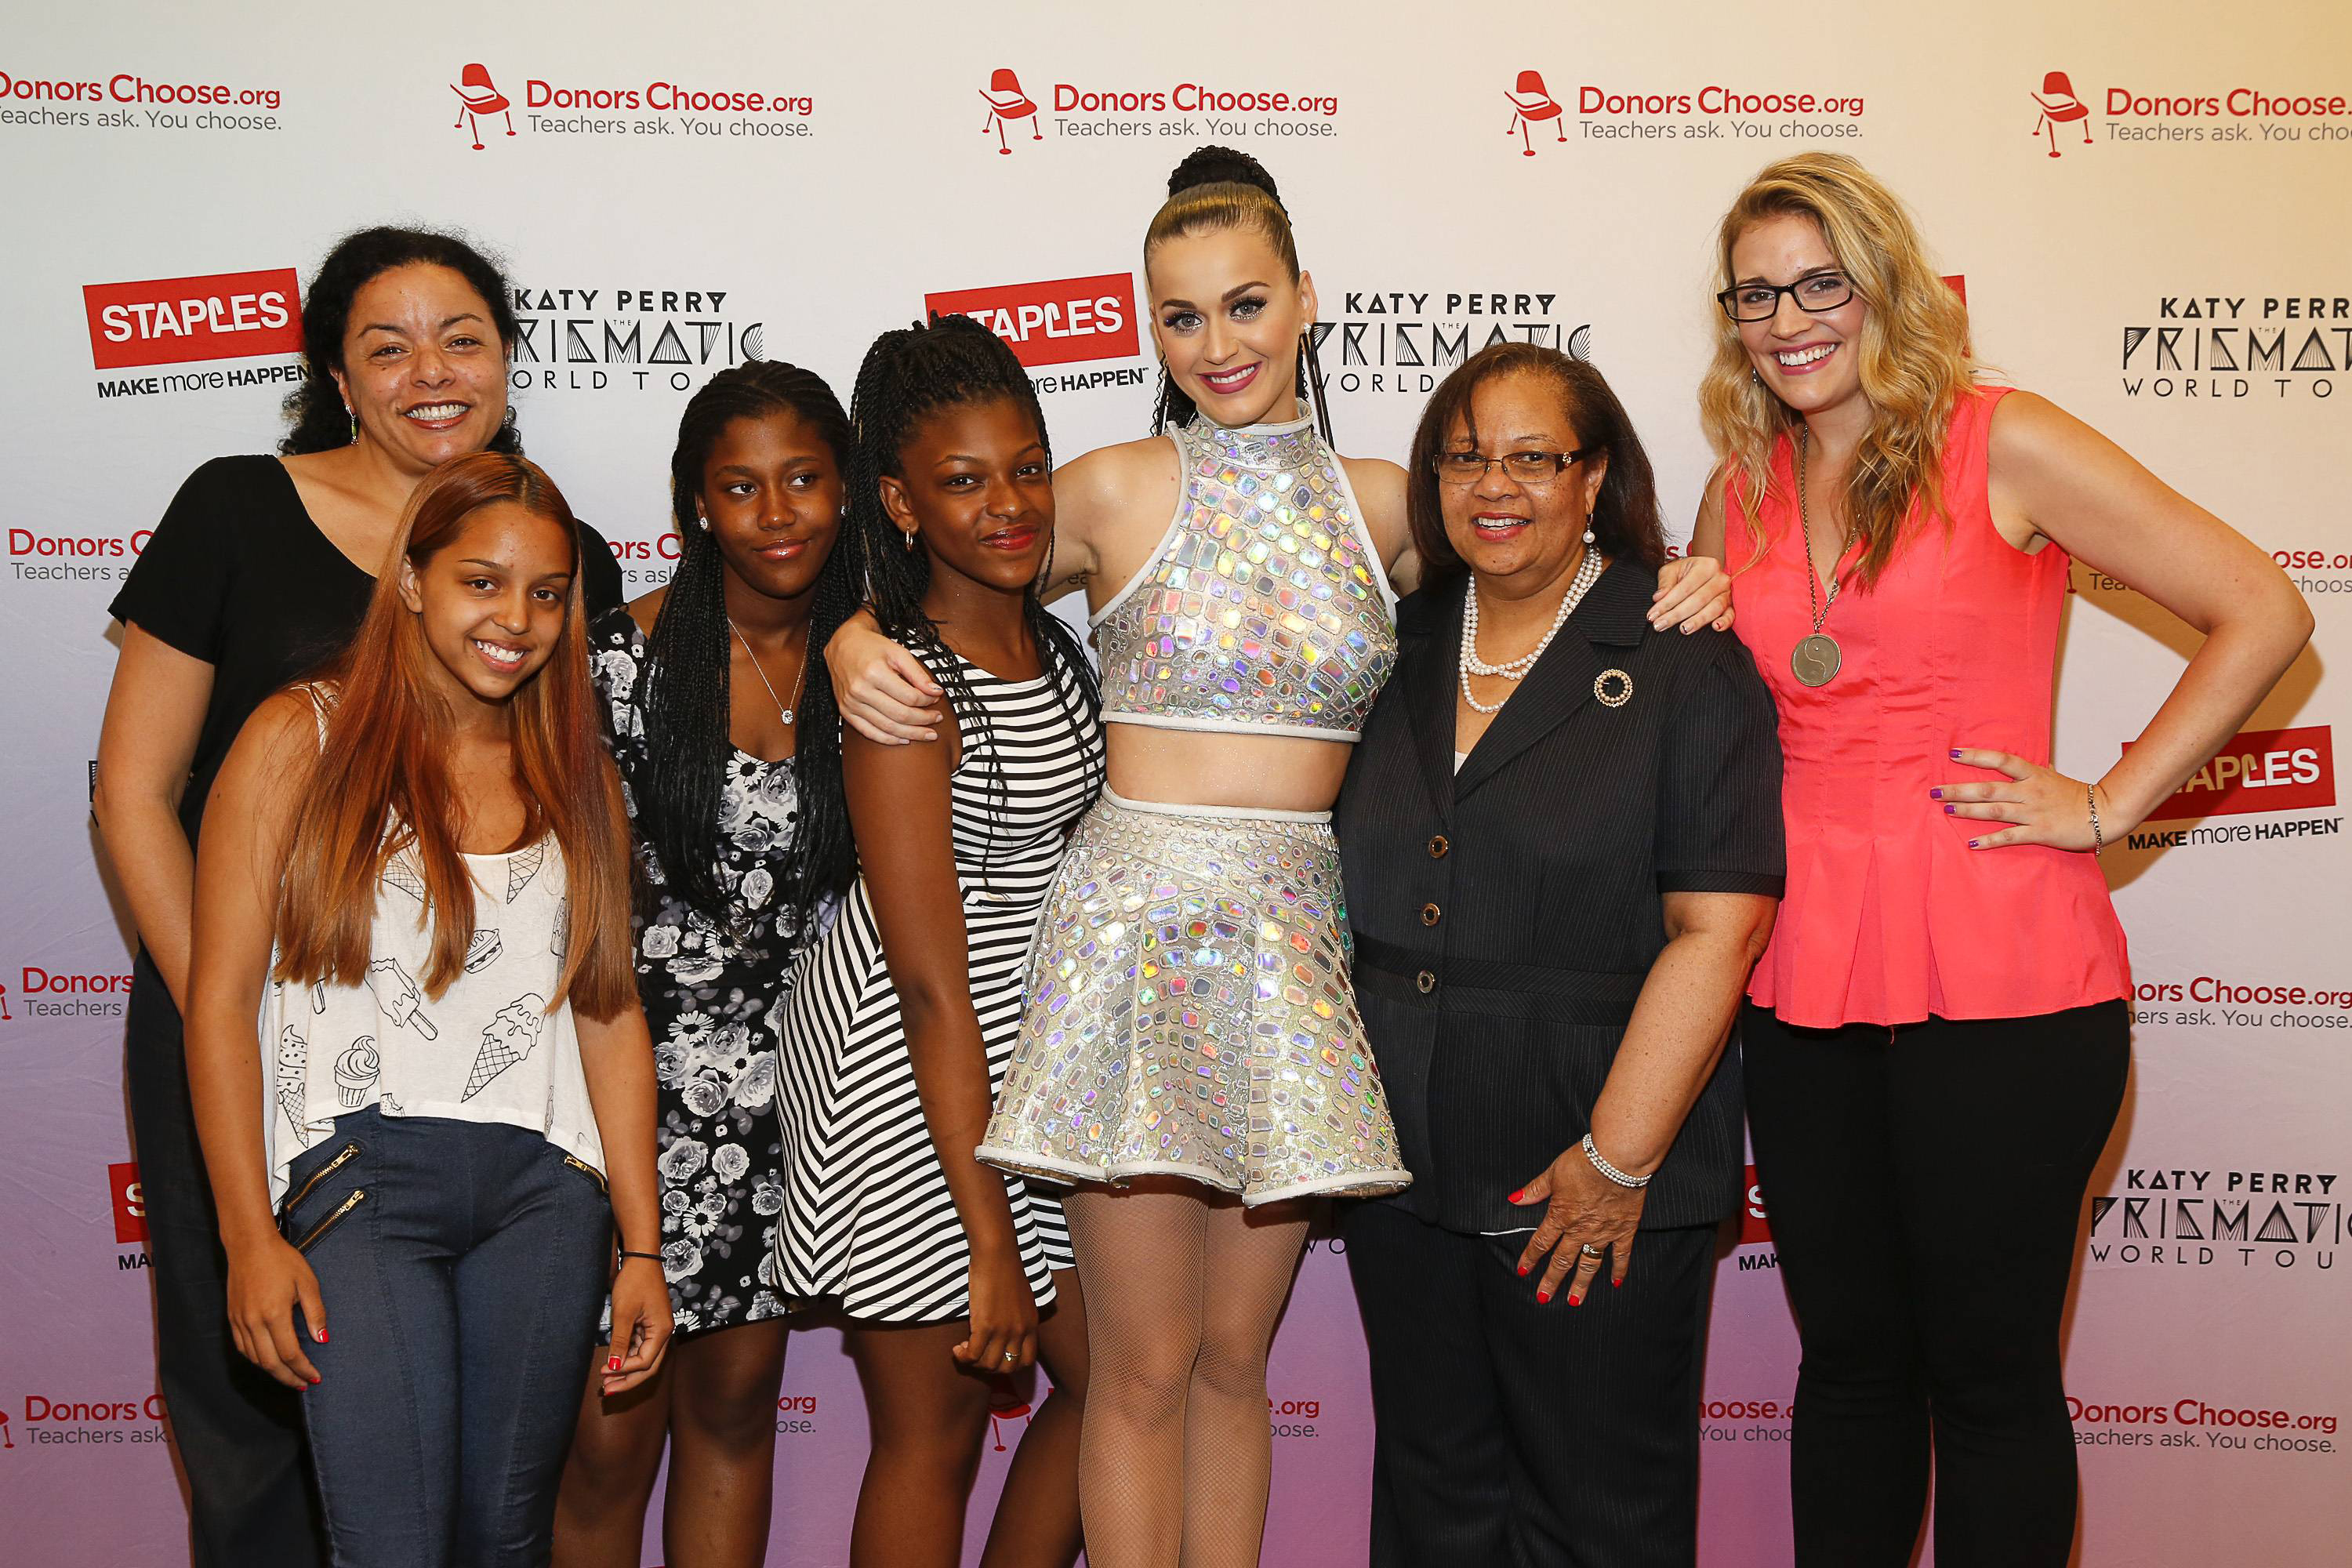 """Global pop star Katy Perry, center, meets with local teachers, left to right, Christine Foyer, local student Krysten Martinez, Dorothy Toure, Jahnay Bryan, Chancelor Dorita Gibson, and local teacher Jennifer Nelson backstage at Madison Square Garden during her Prismatic World Tour performance on Wed., July 9 in New York, N.Y. Staples teamed up with superstar Katy Perry to """"Make Roar Happen"""" and celebrate and support teachers during the back-to-school season by donating $1 million to DonorsChoose.org, a charity that has helped fund more than 450,000 classroom projects for teachers and impacted more than 11 million students. (Photo by Mark Von Holden/Invision for Staples/AP Images)"""